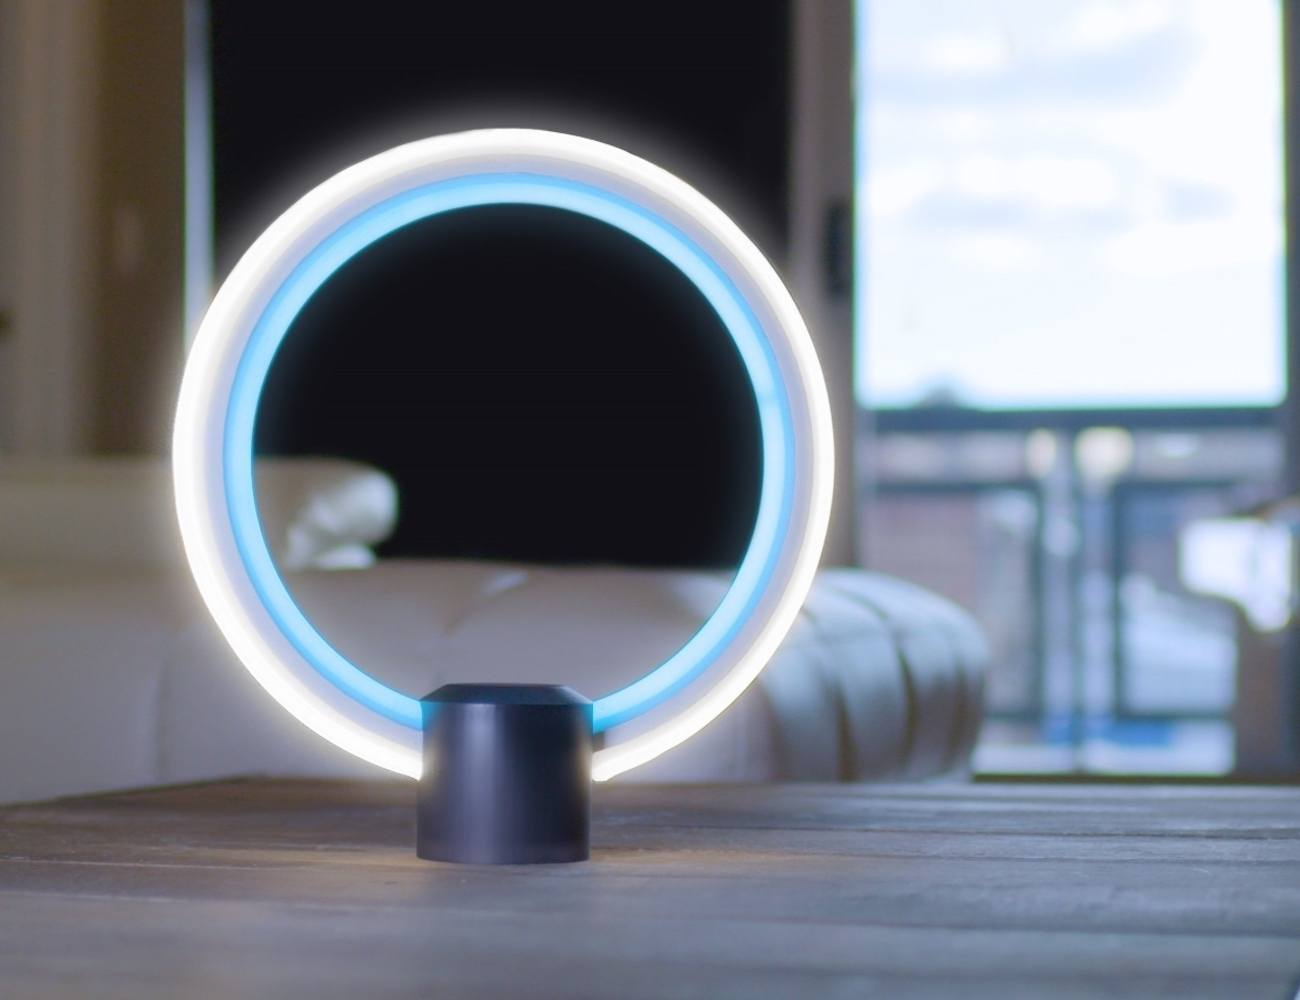 C by GE LED Lamp with Alexa